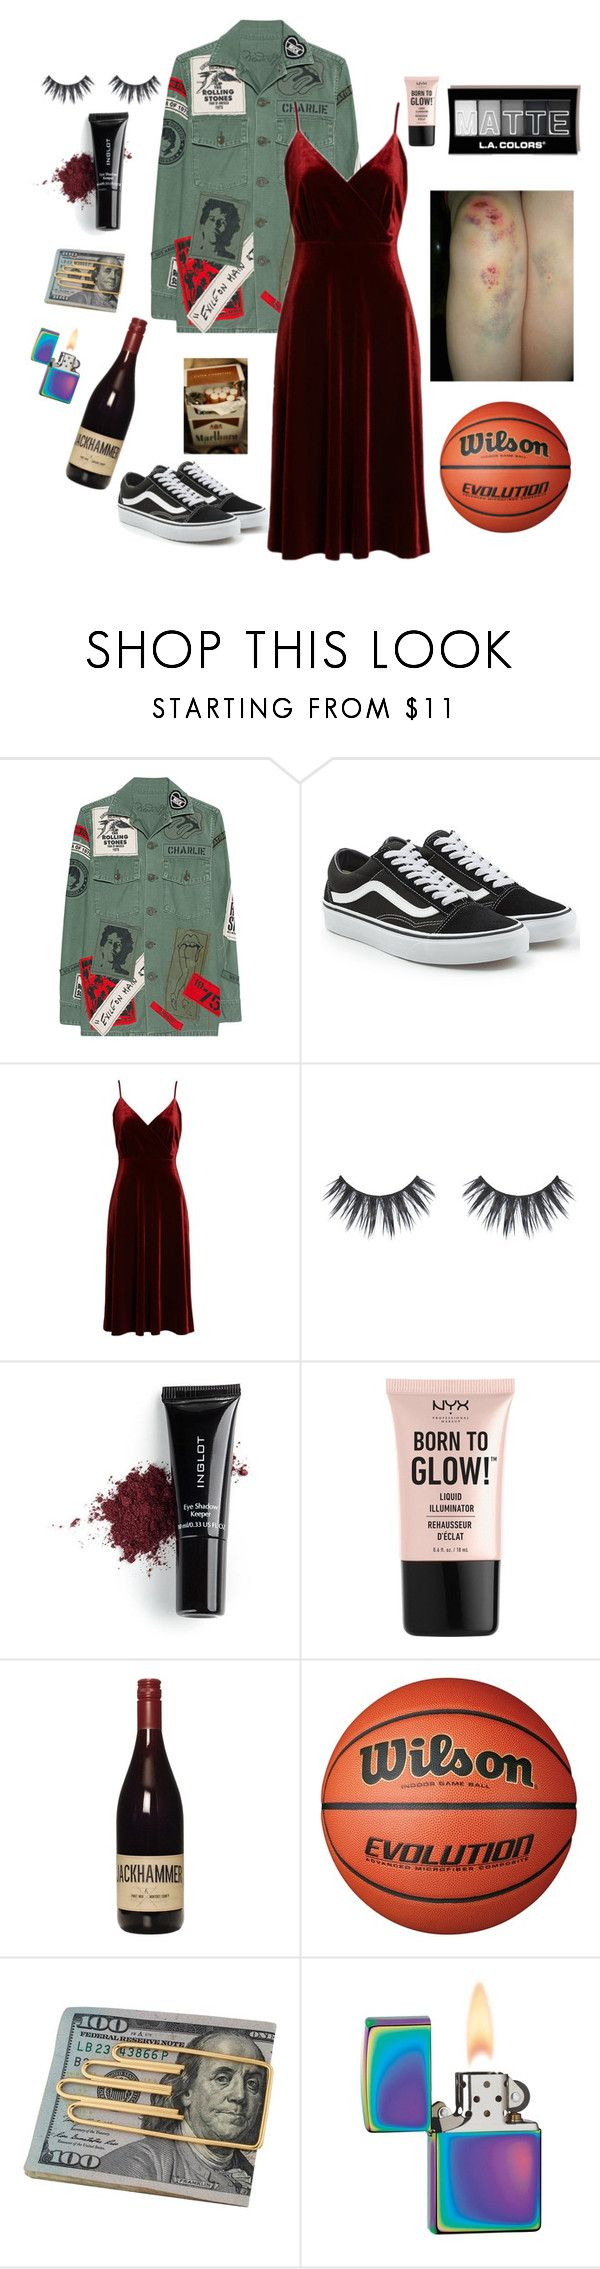 """""""GRADUATE NIGHT"""" by askingdenchik ❤ liked on Polyvore featuring MadeWorn, Vans, Ali & Jay, Inglot, NYX, Cartier, Zippo, school, party and girly"""